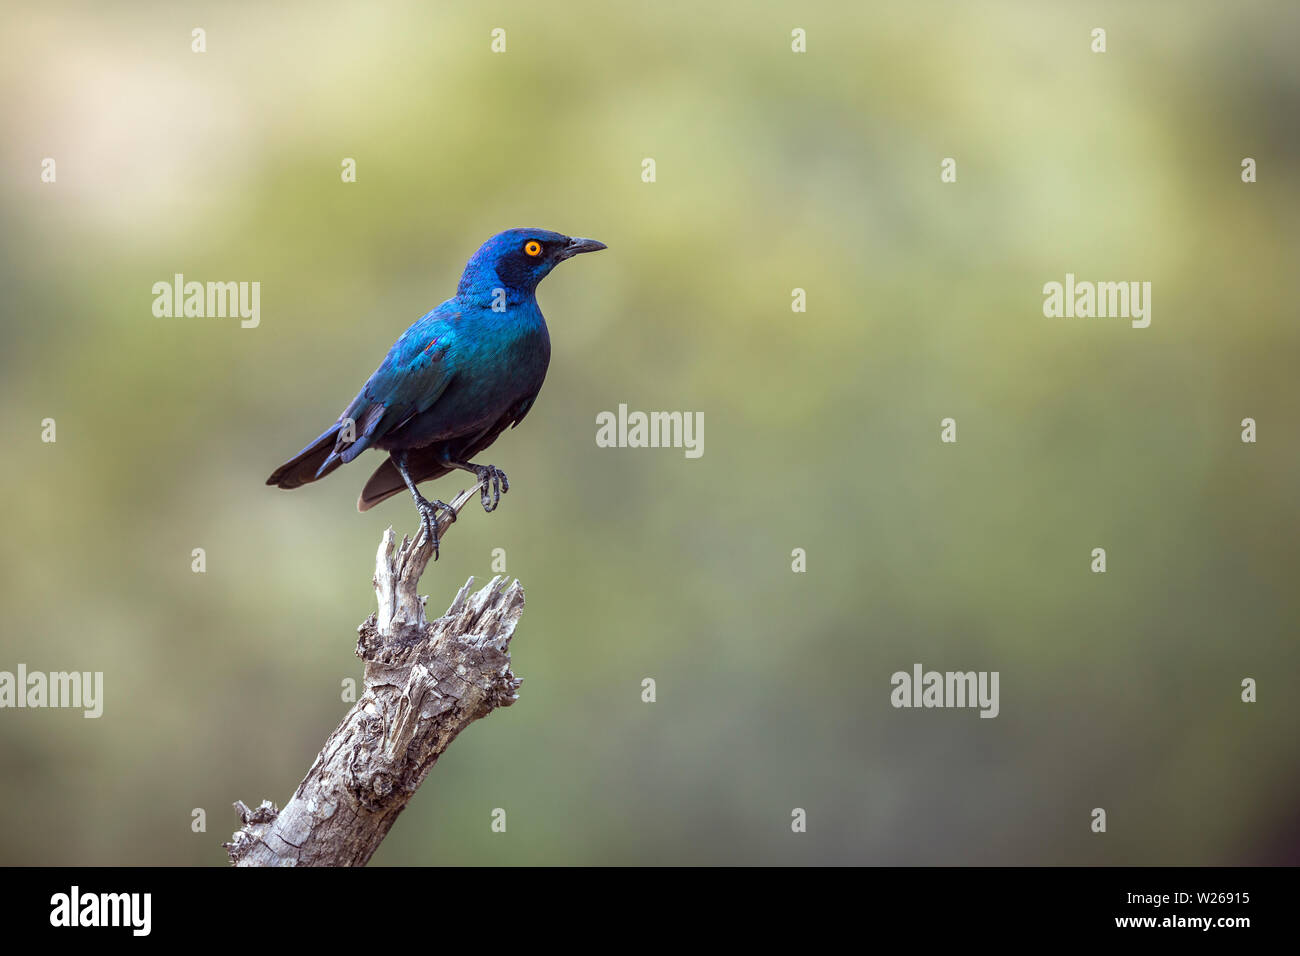 Greater Blue-eared Glossy Starling isolated in natural background in Kruger National park, South Africa ; Specie Lamprotornis chalybaeus family of Stu Stock Photo